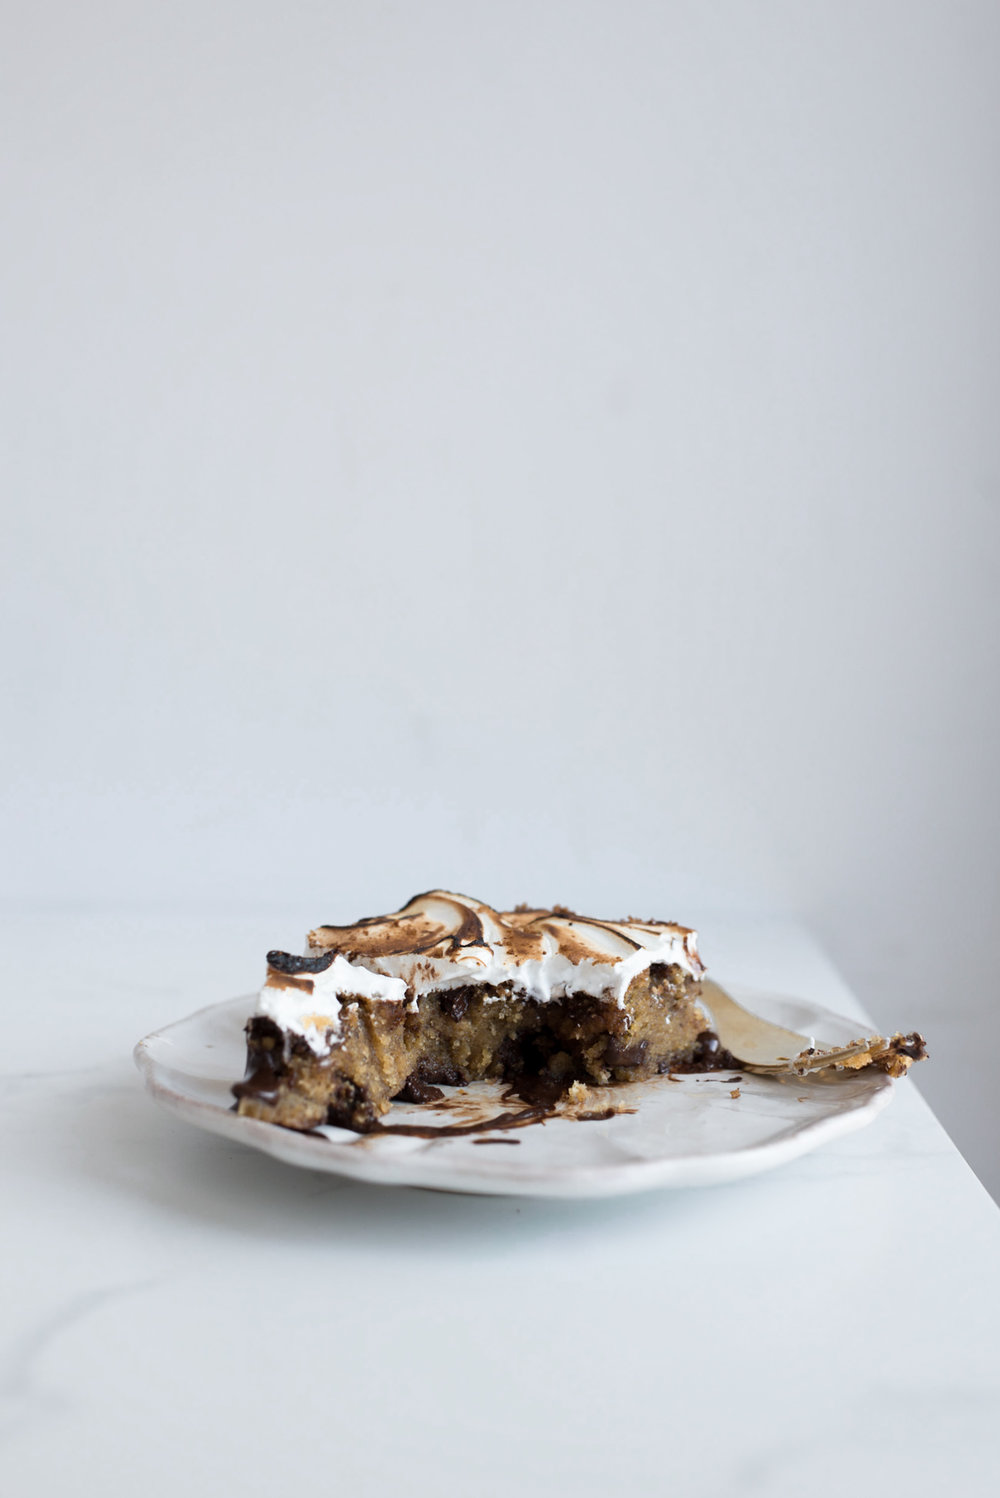 Brown-Butter-Cookie-Meringue-Bars-with-Espresso-Fleur-de-Sel-8.jpg